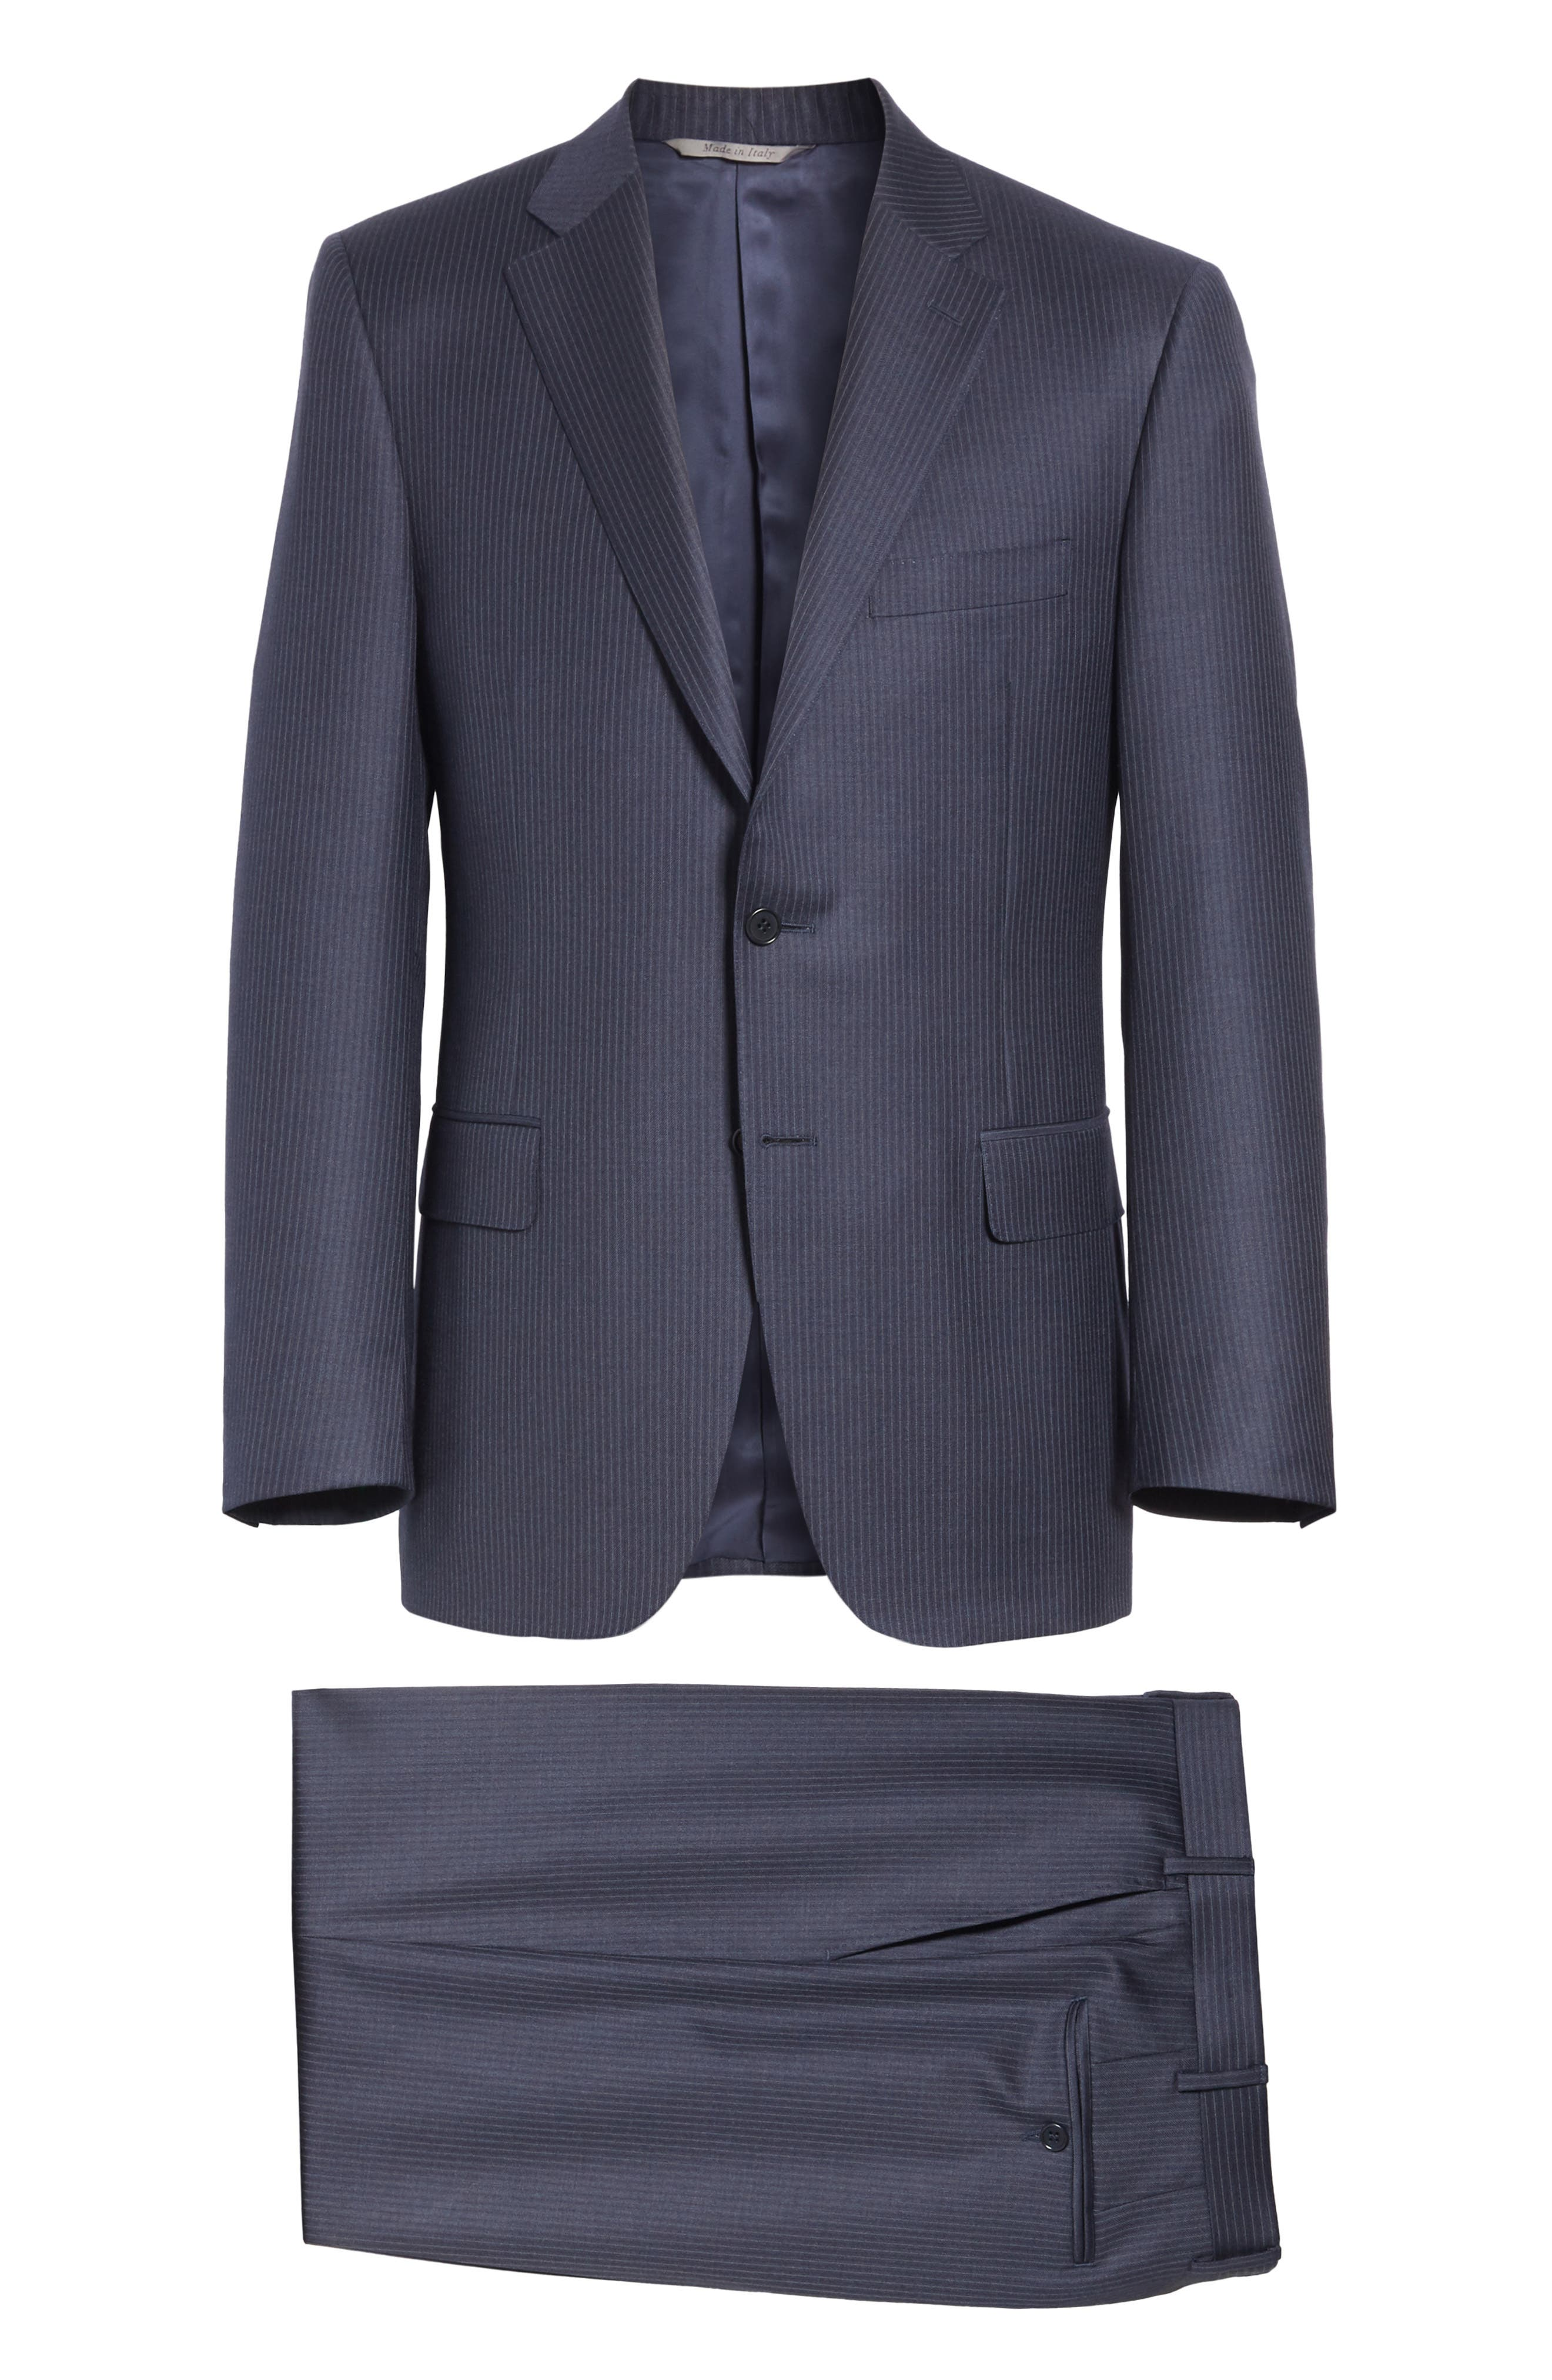 CANALI,                             Classic Fit Pinstripe Wool Suit,                             Alternate thumbnail 8, color,                             410